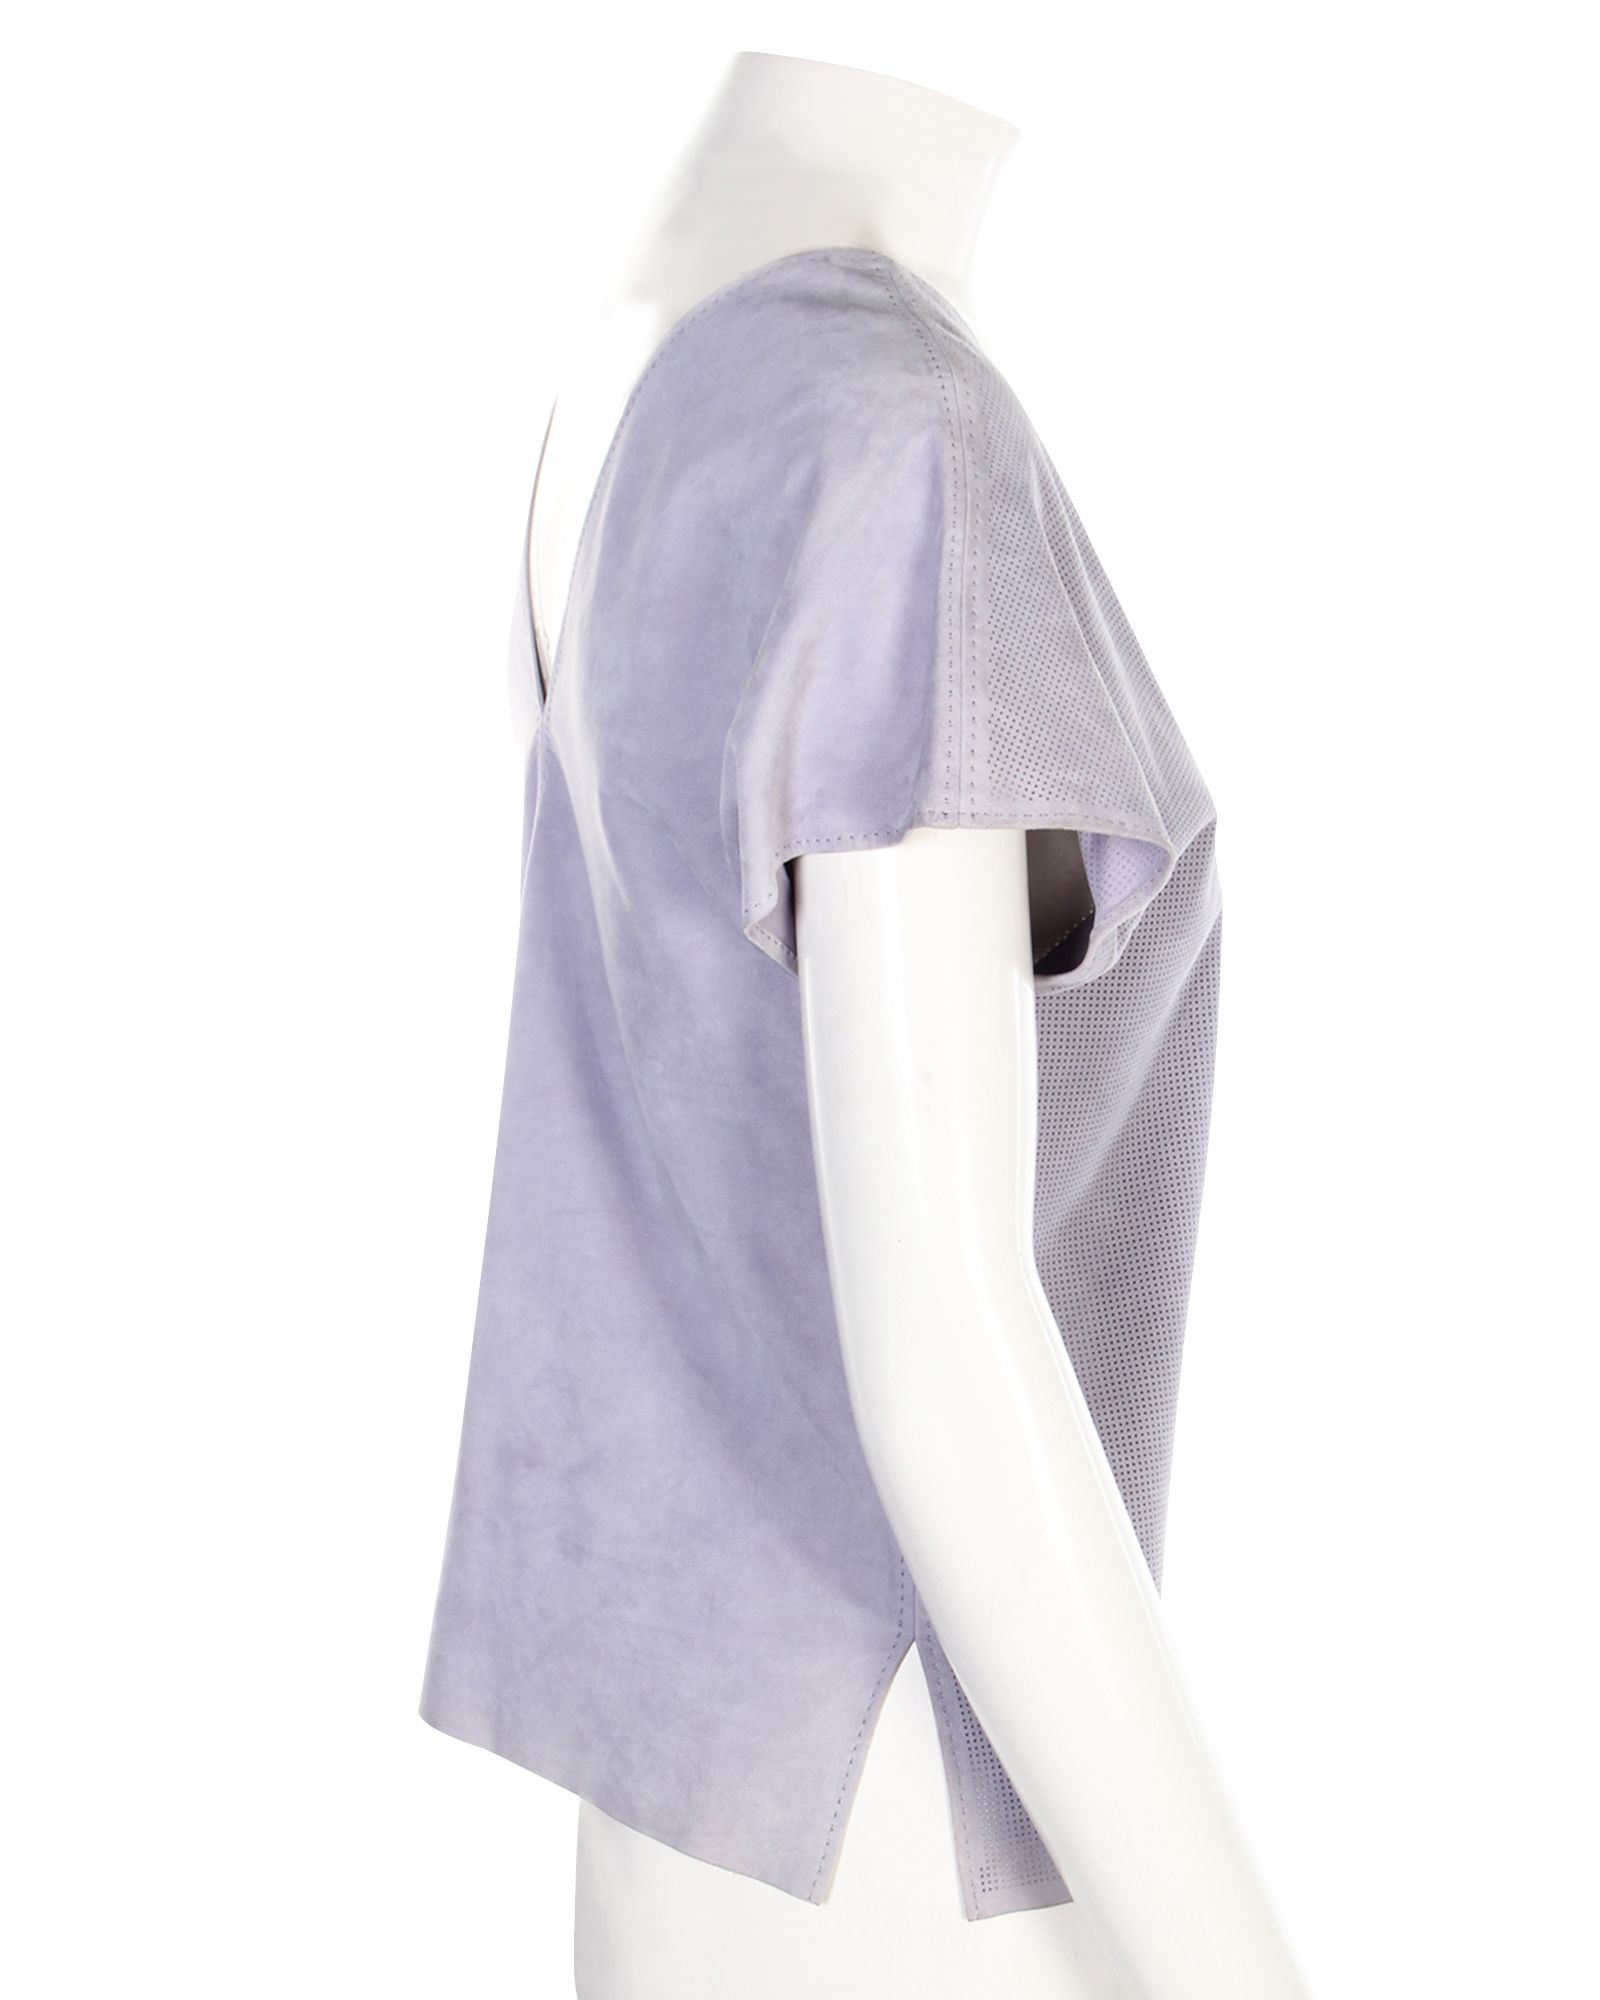 Hermès Purple Leather Top -Pre Owned Condition Very Good